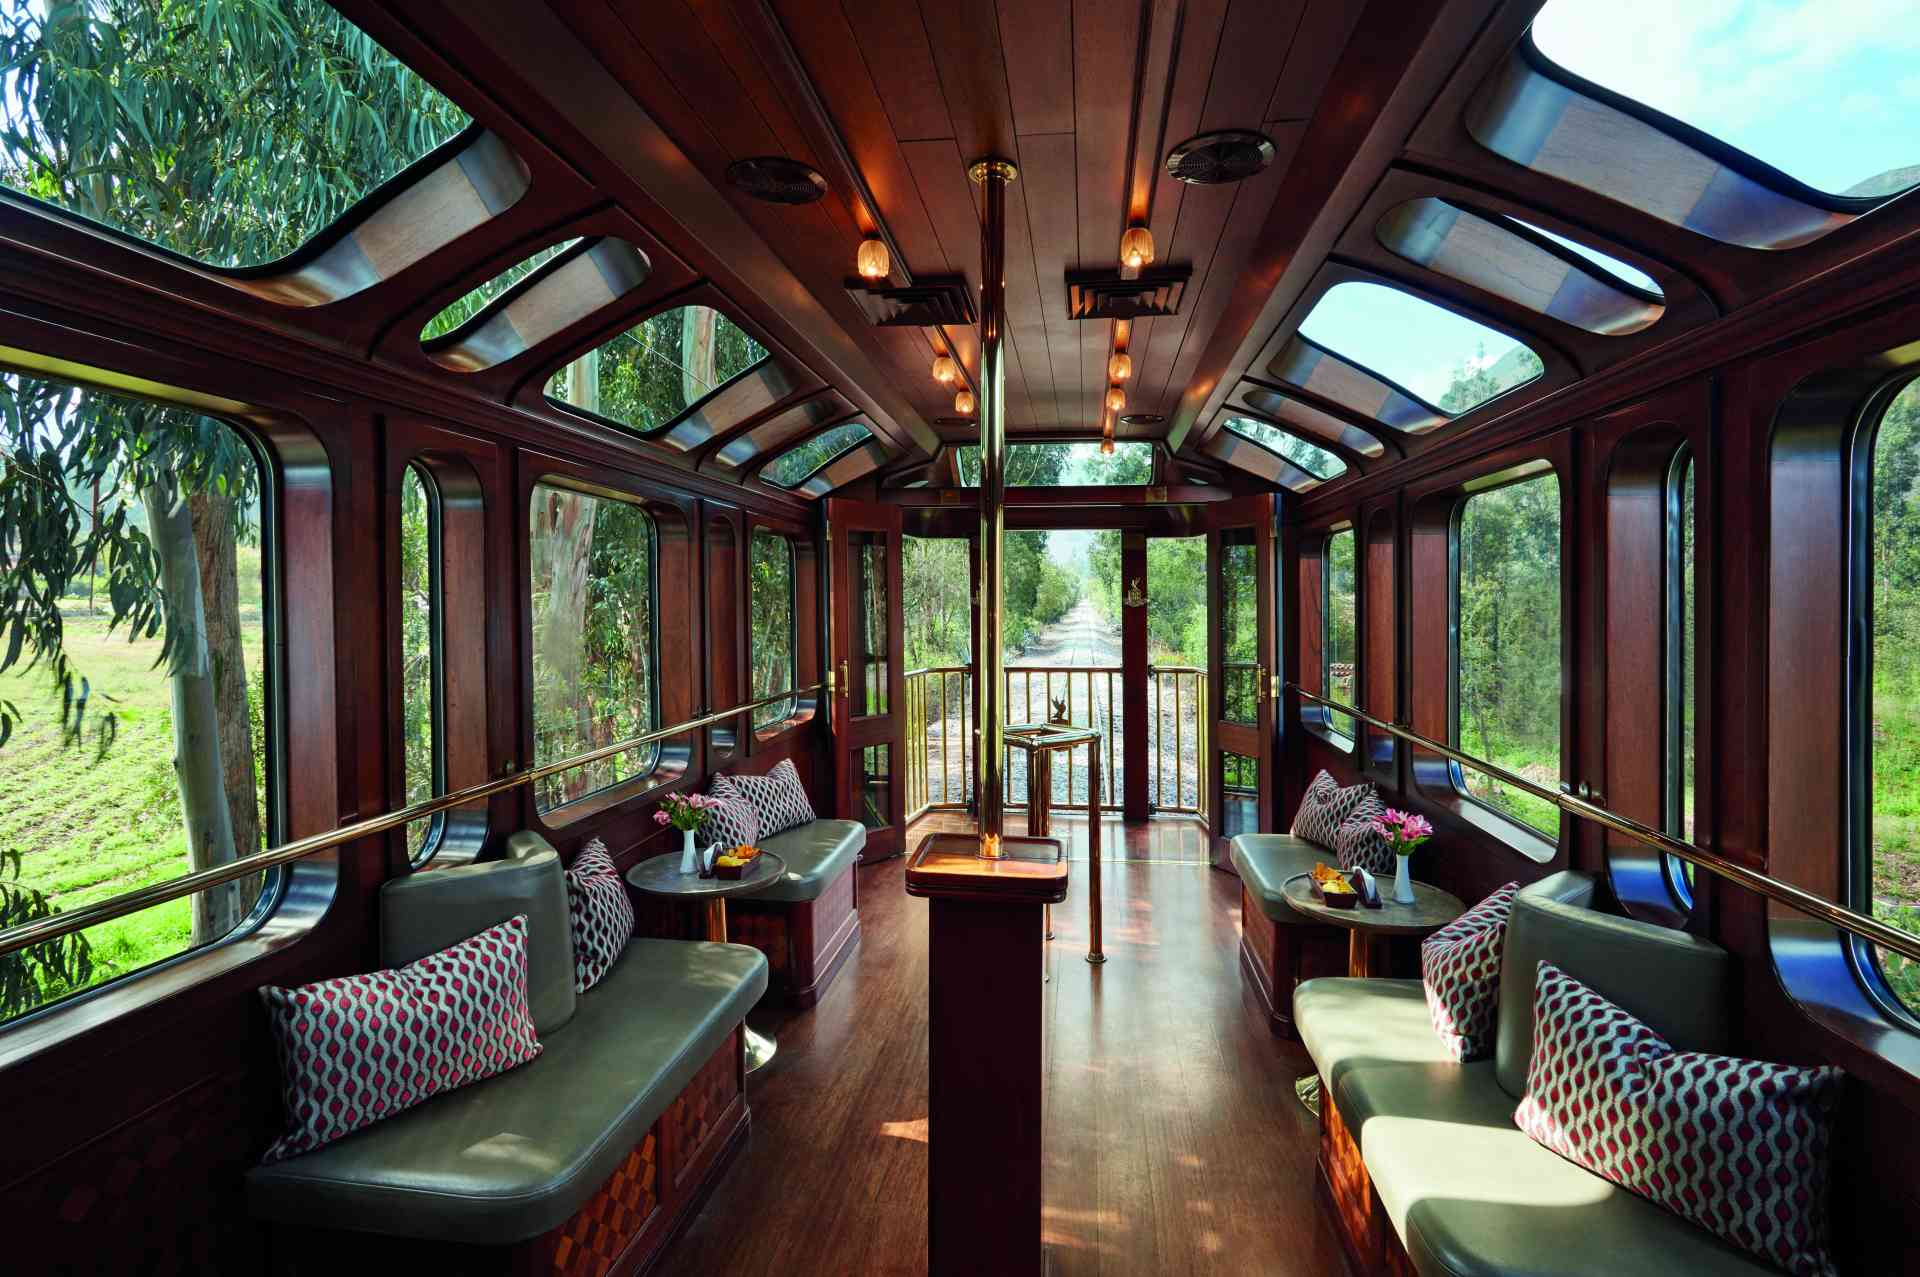 Belmond Hiram Binhgam Train, Peru by Belmond Images